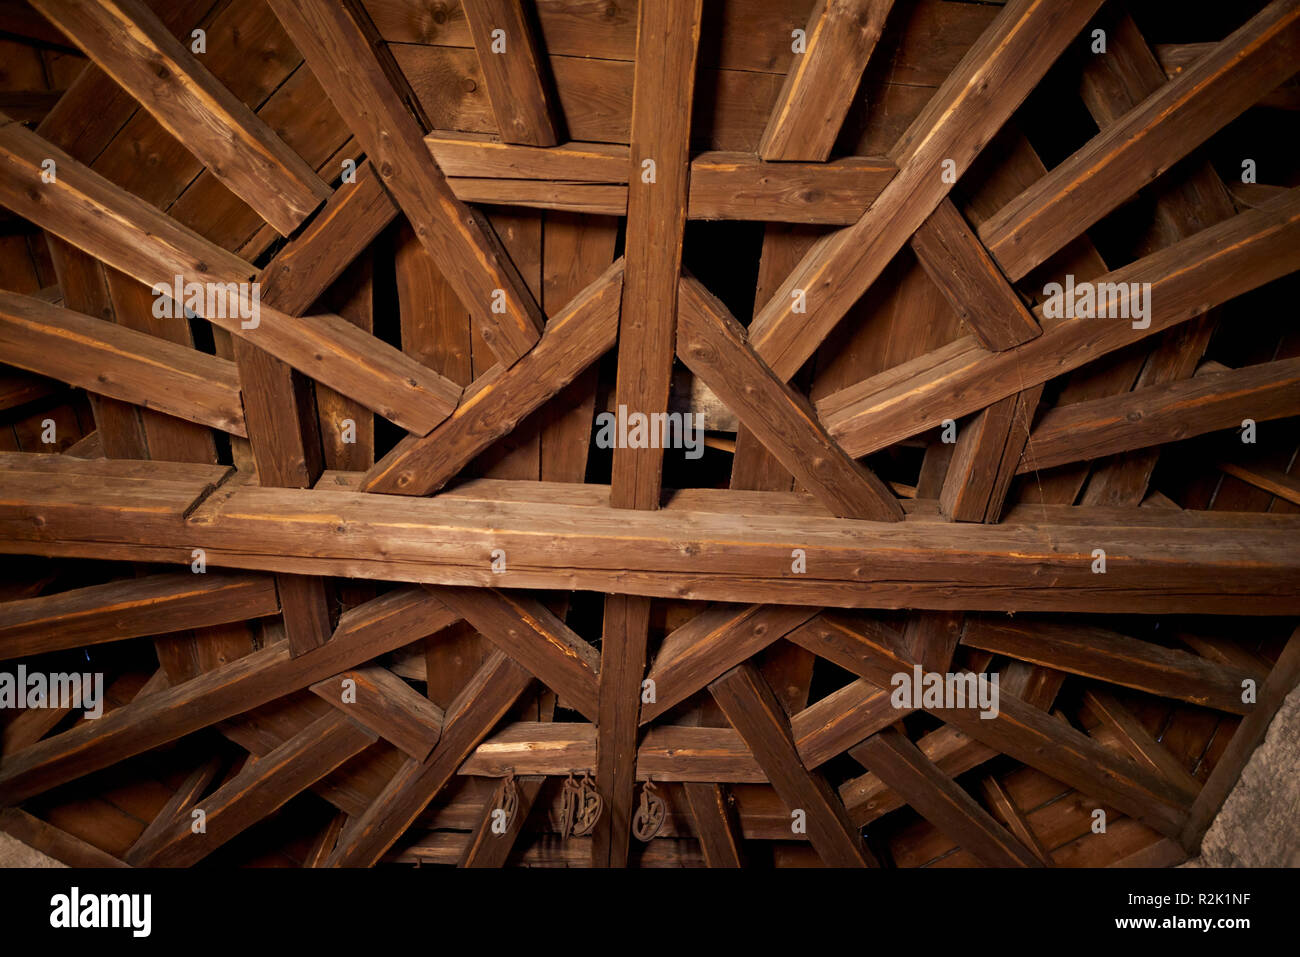 Entablature in the bell tower - Stock Image